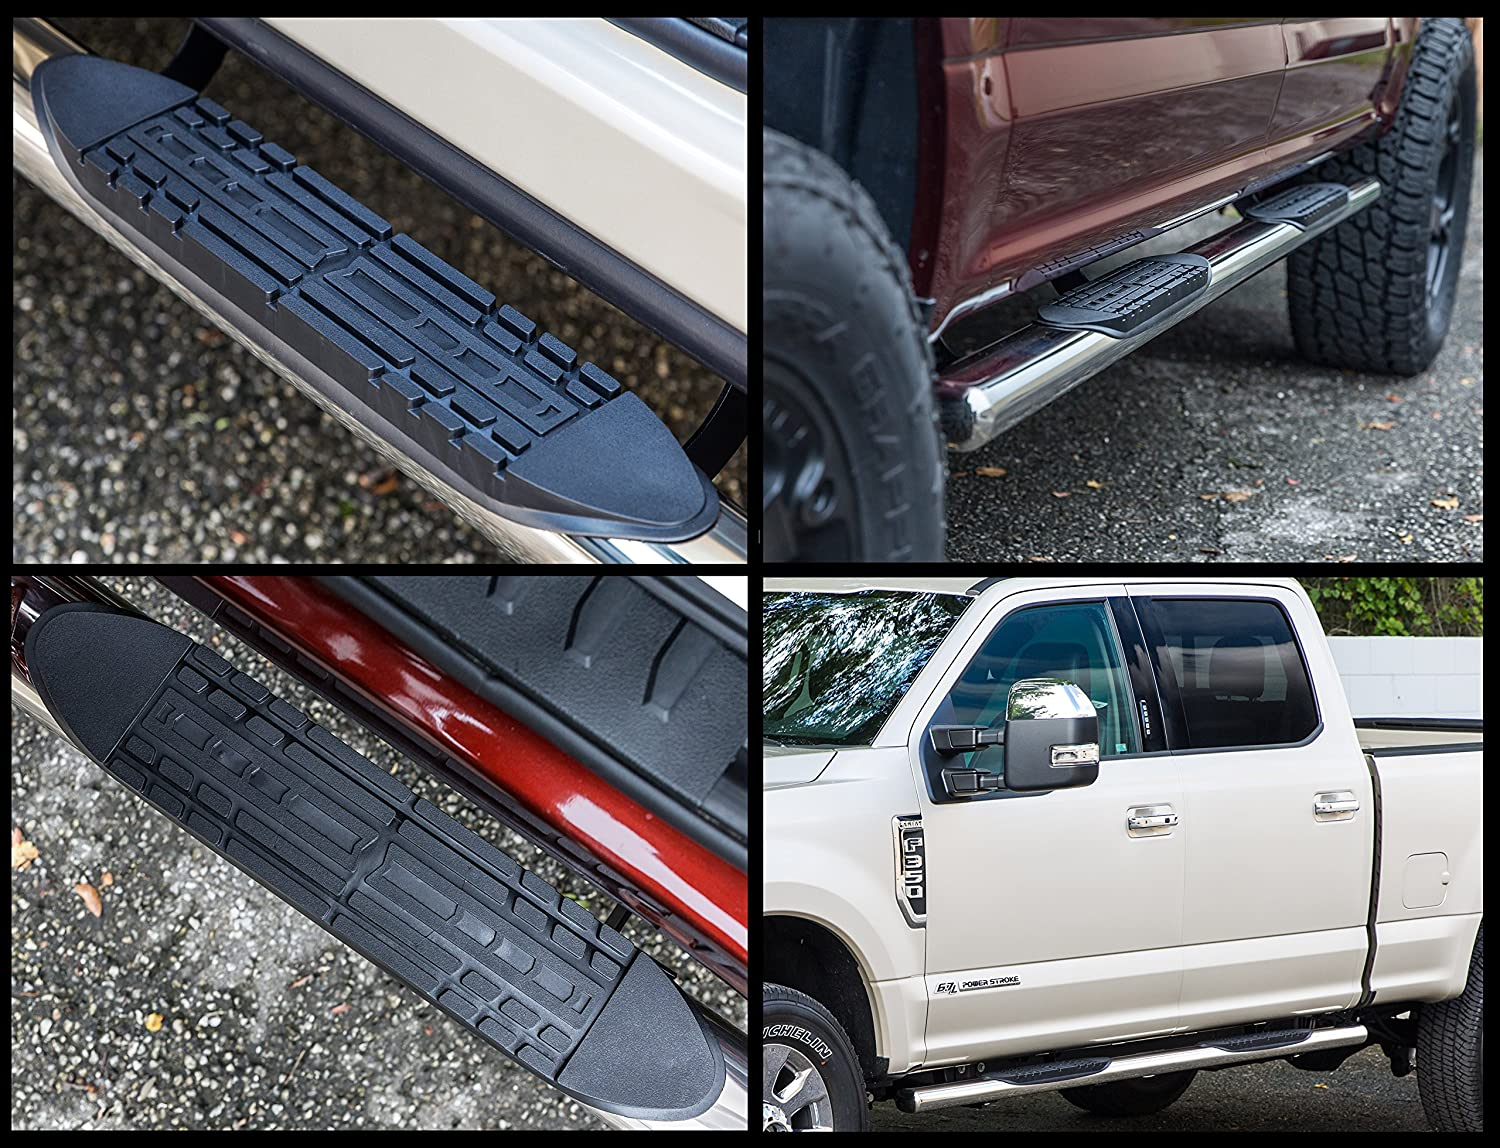 3341200 2007-2018 Toyota Tundra Double Cab Only Nerf Bars Truck Side Steps Ionic Pro Series 3 Stainless fits